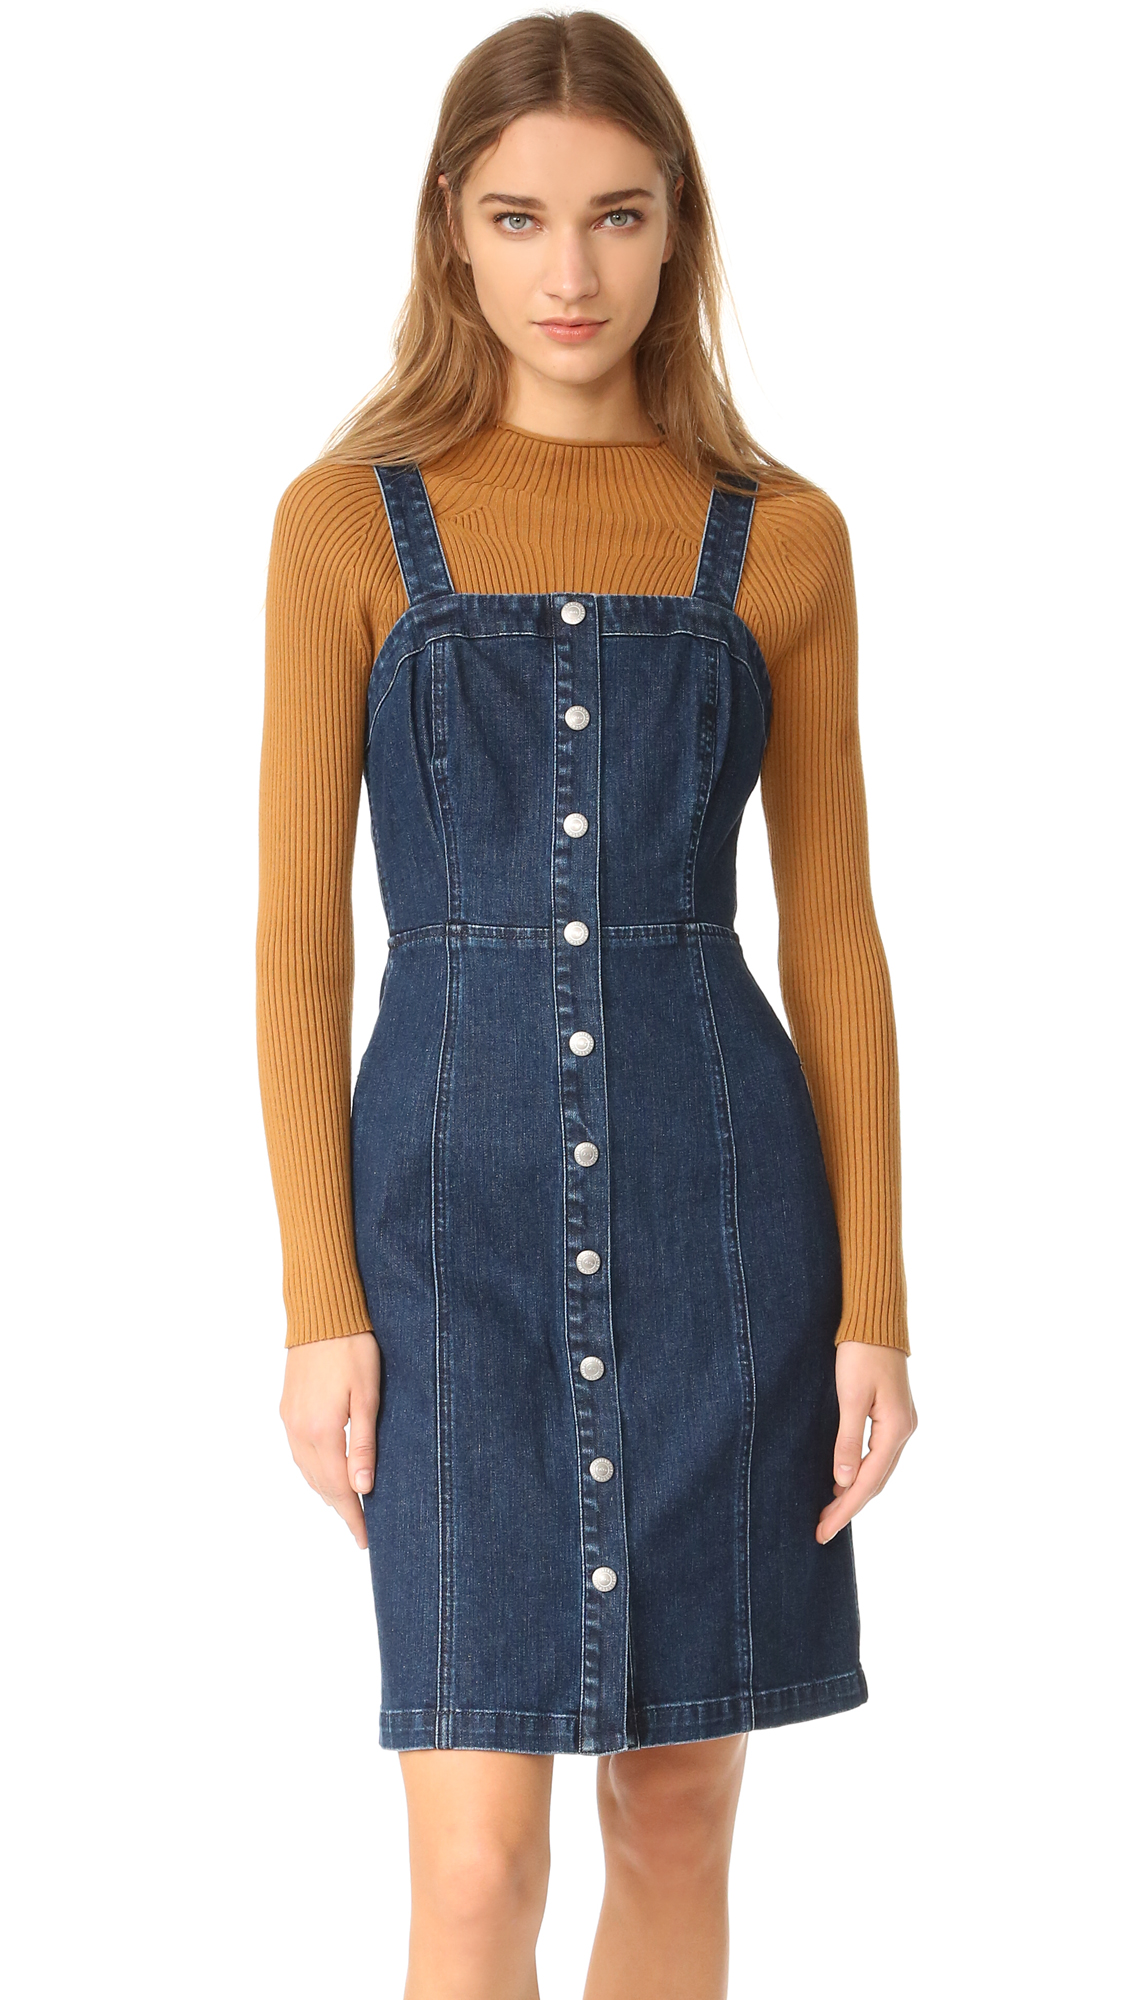 Ag The Sydney Fitted Button Down Dress - Renewal at Shopbop